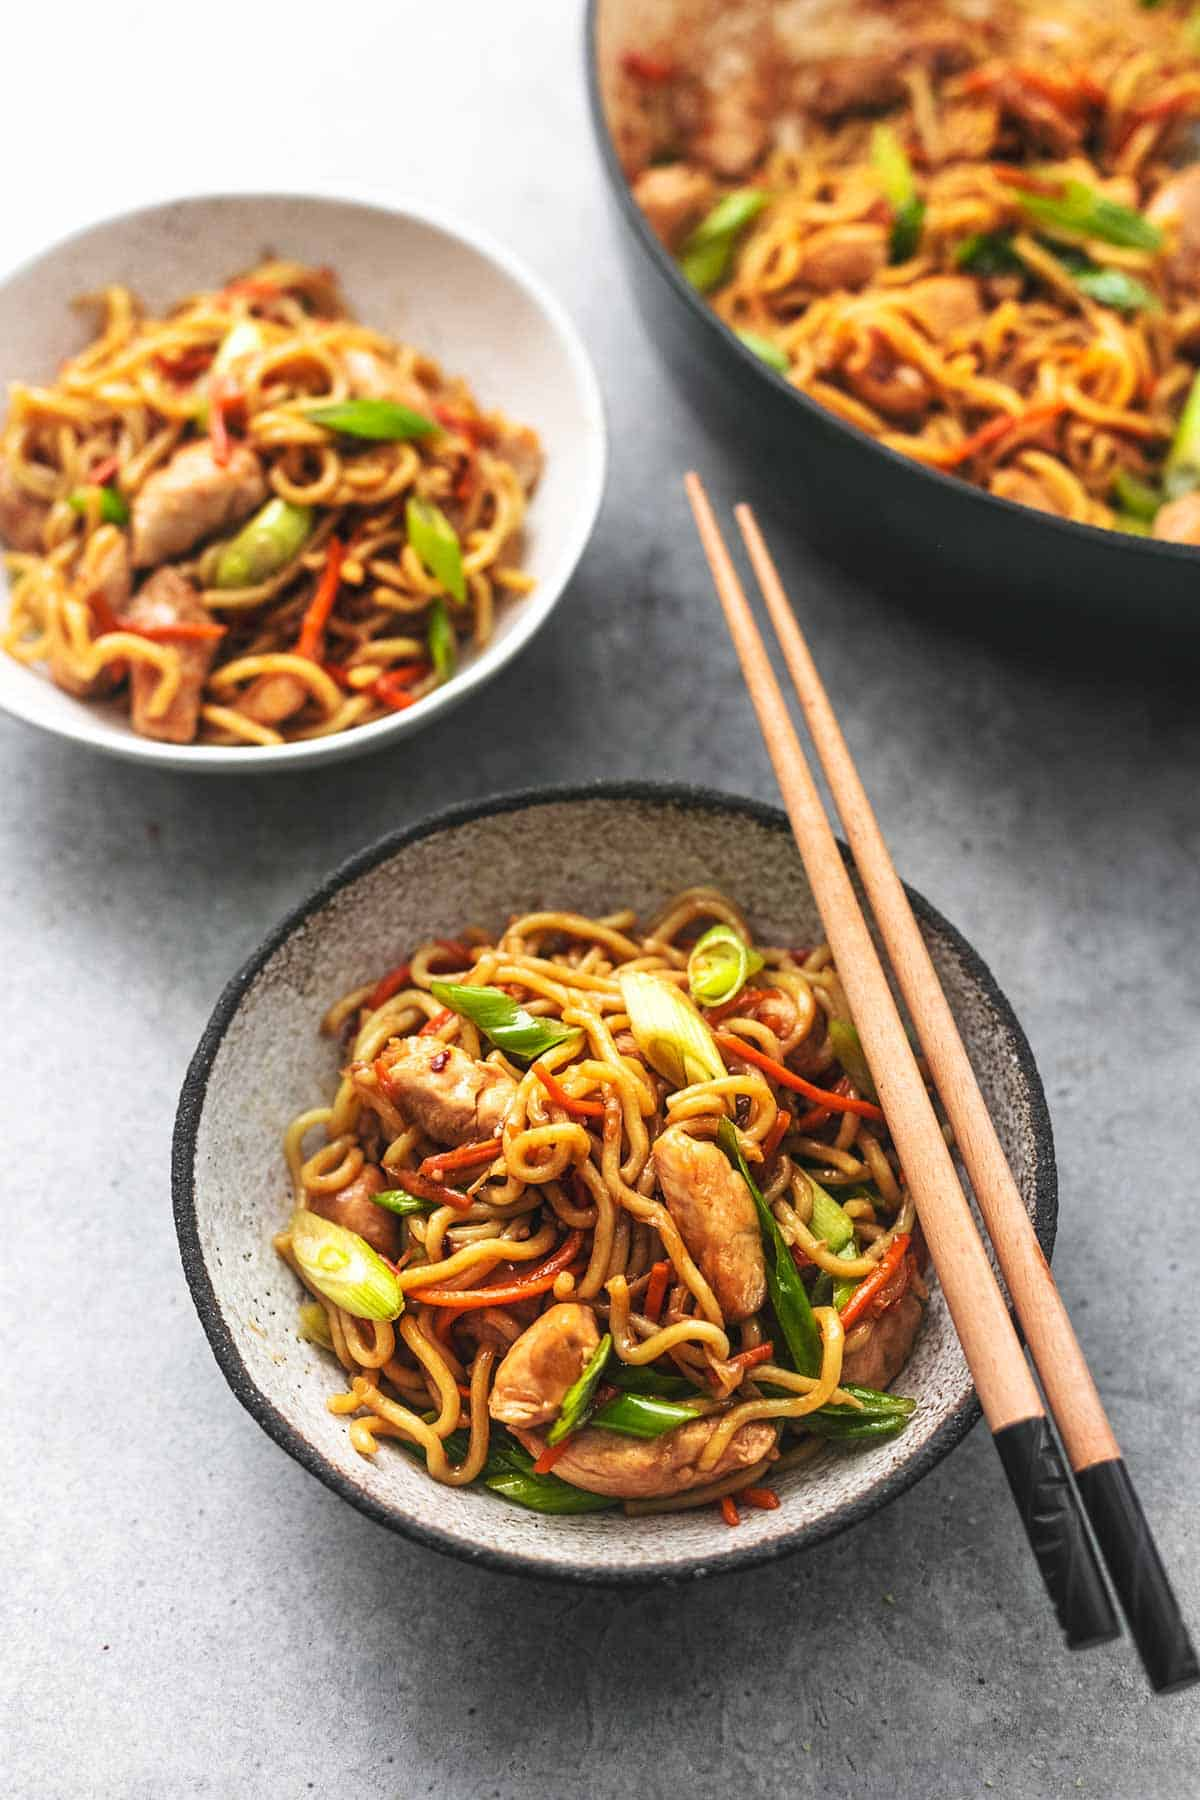 a bowl with chopsticks on top, bowl filled with chicken chow mein noodles